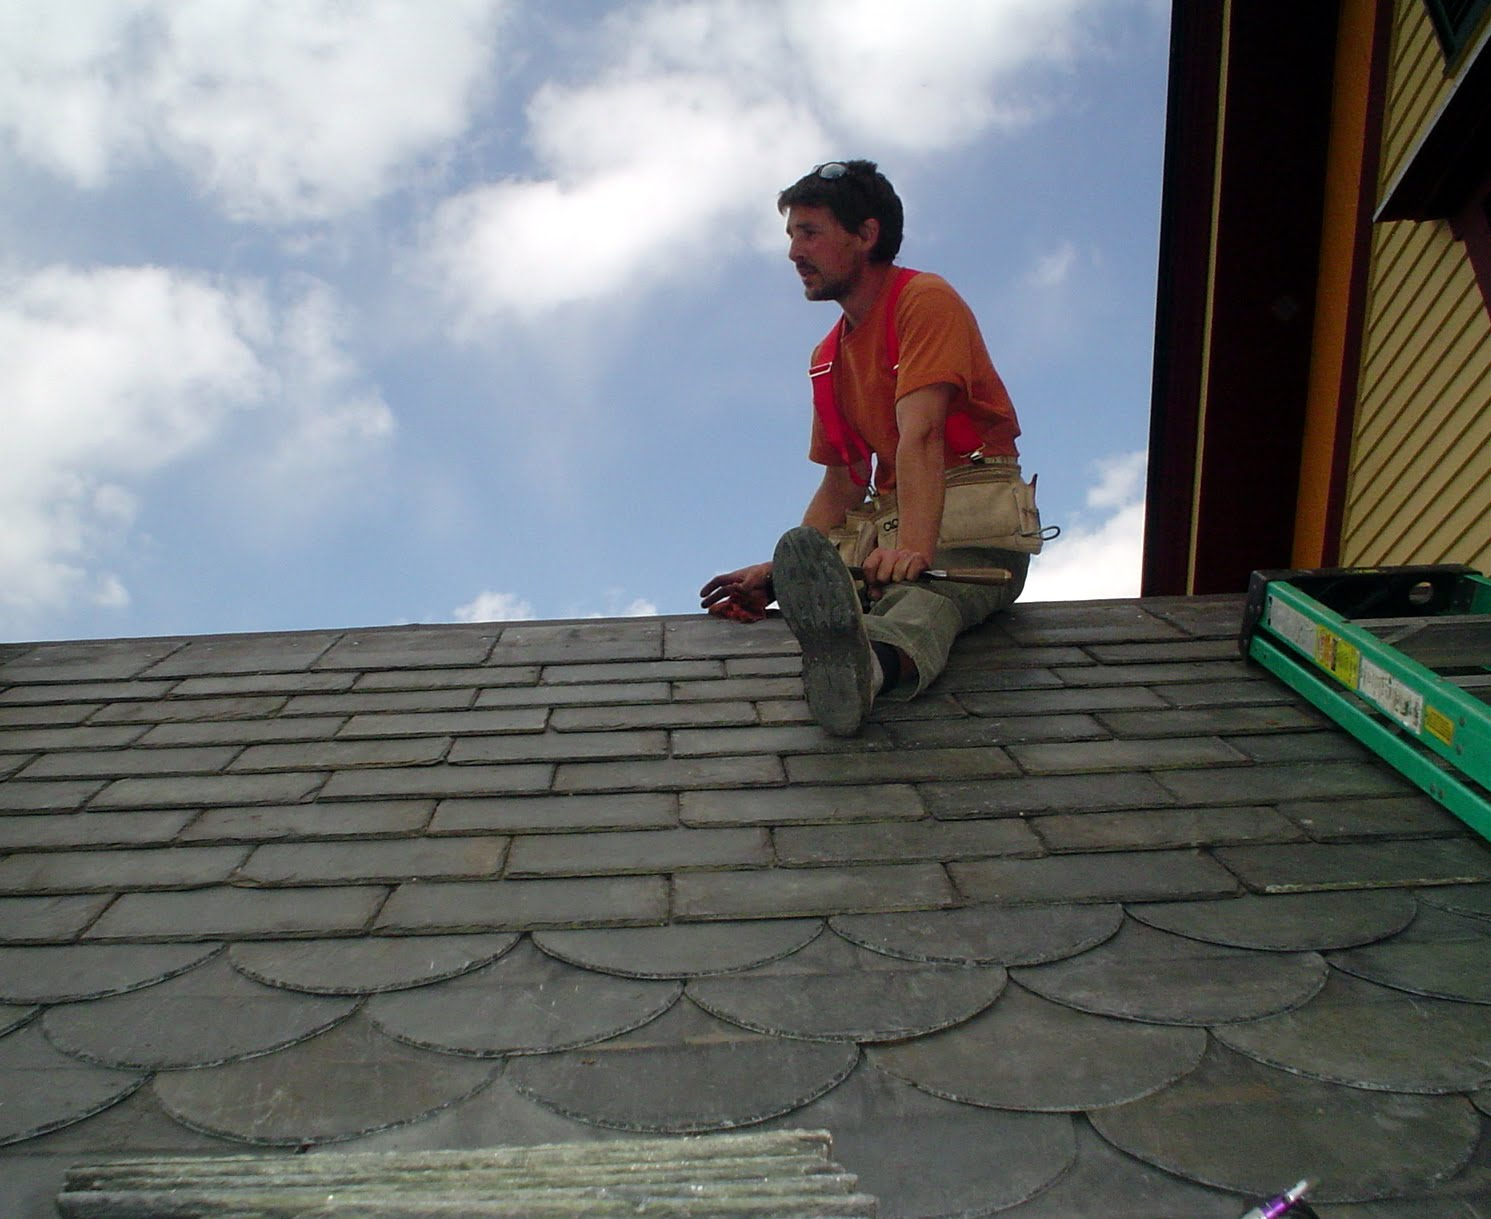 Seth Kelley nears completion of the first side of the roof.